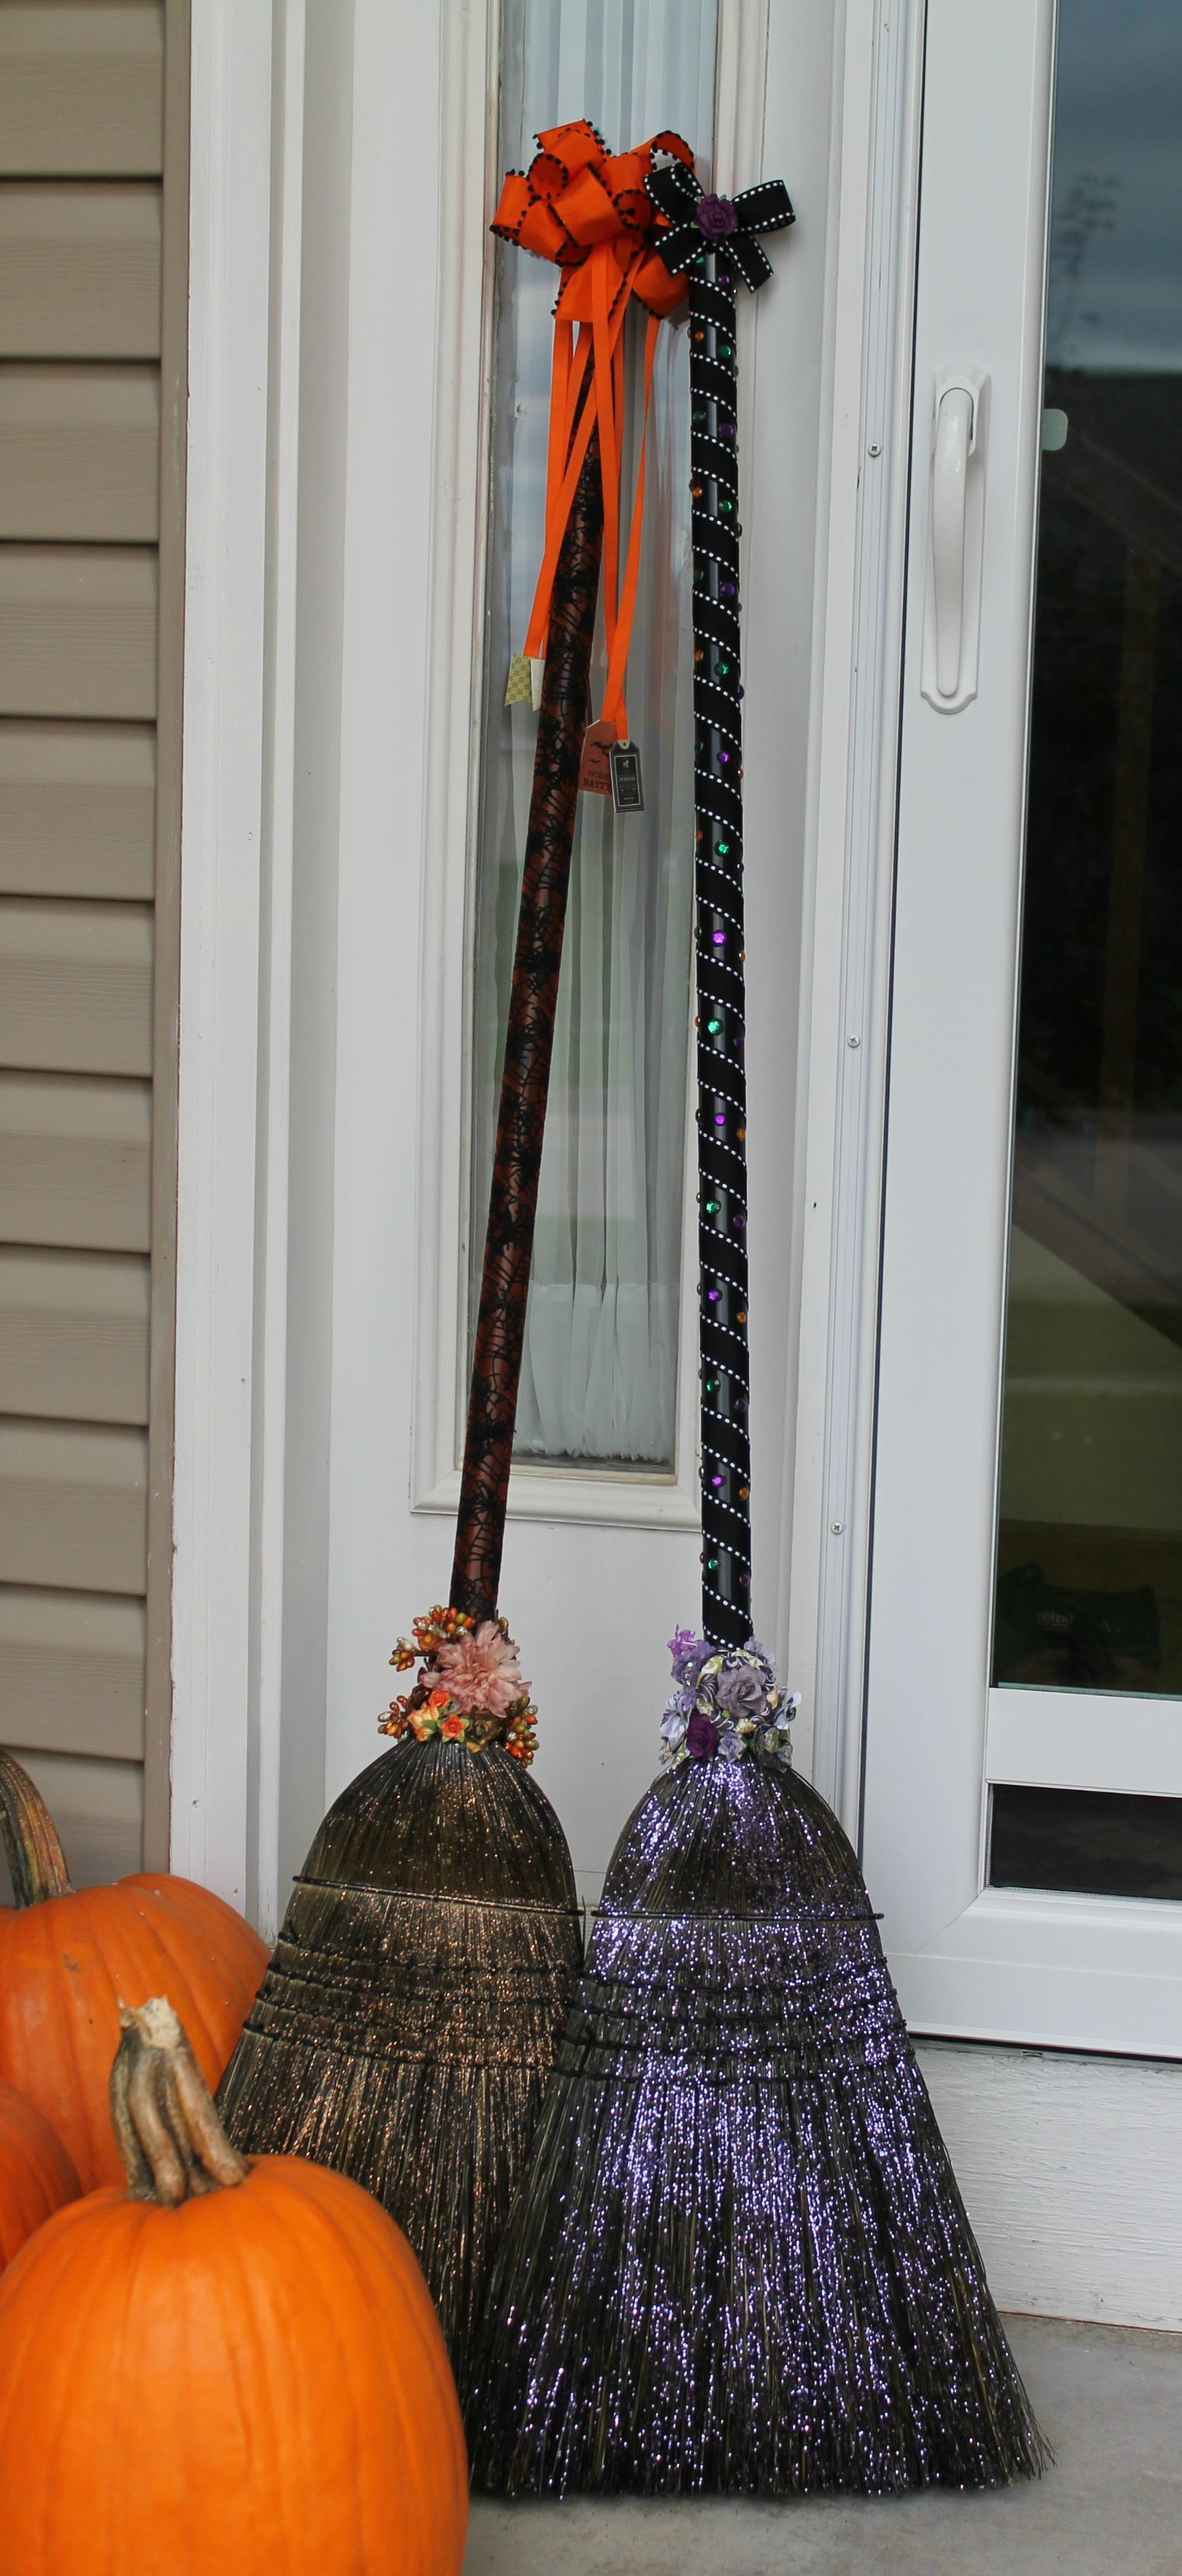 Halloween Decor Hacks Witch broom, Holidays and Halloween ideas - Inexpensive Halloween Decorations